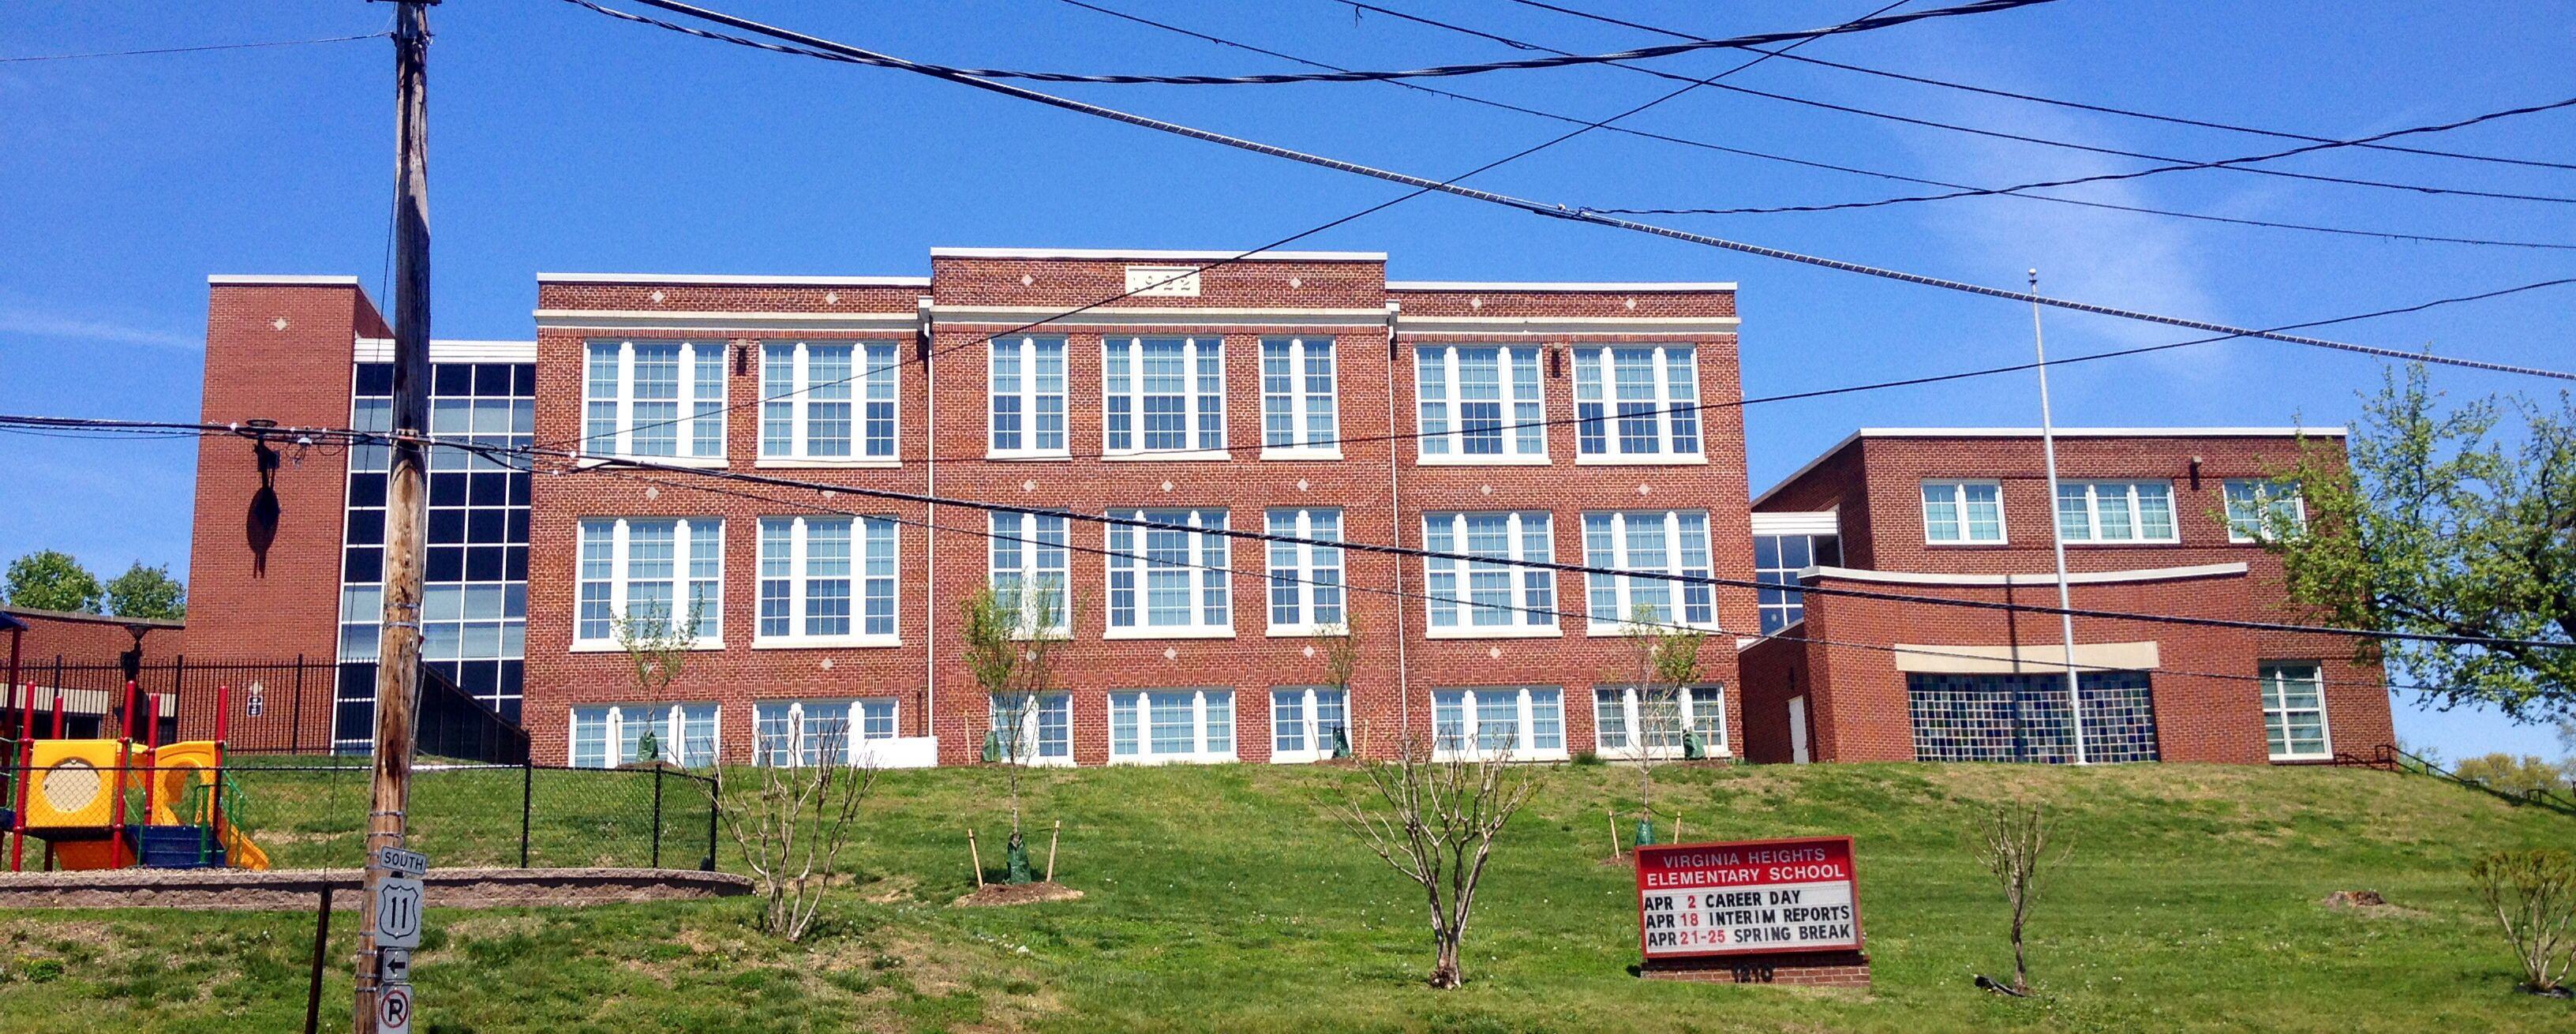 Va Heights Elementary My School One Block From Home Star City